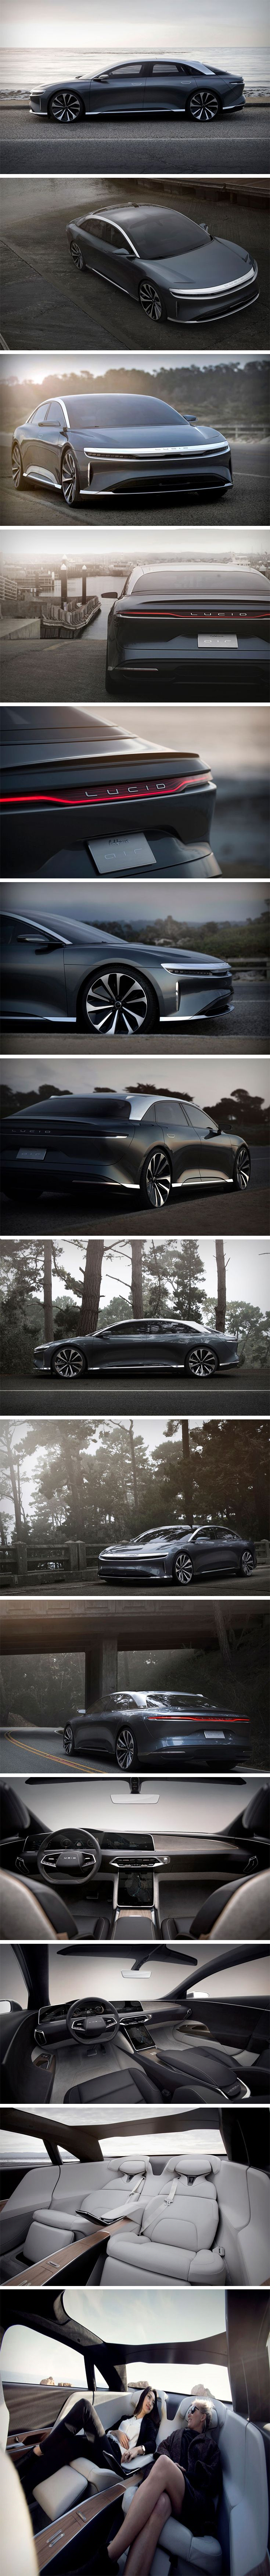 Capable of 1,000 horsepower and boasting a range of 400 miles, the Lucid Air is guaranteed to give Tesla and the other leading electrical car brands a serious headache. When it comes to the future enhancements of the Lucid Air, they seem to have it covere